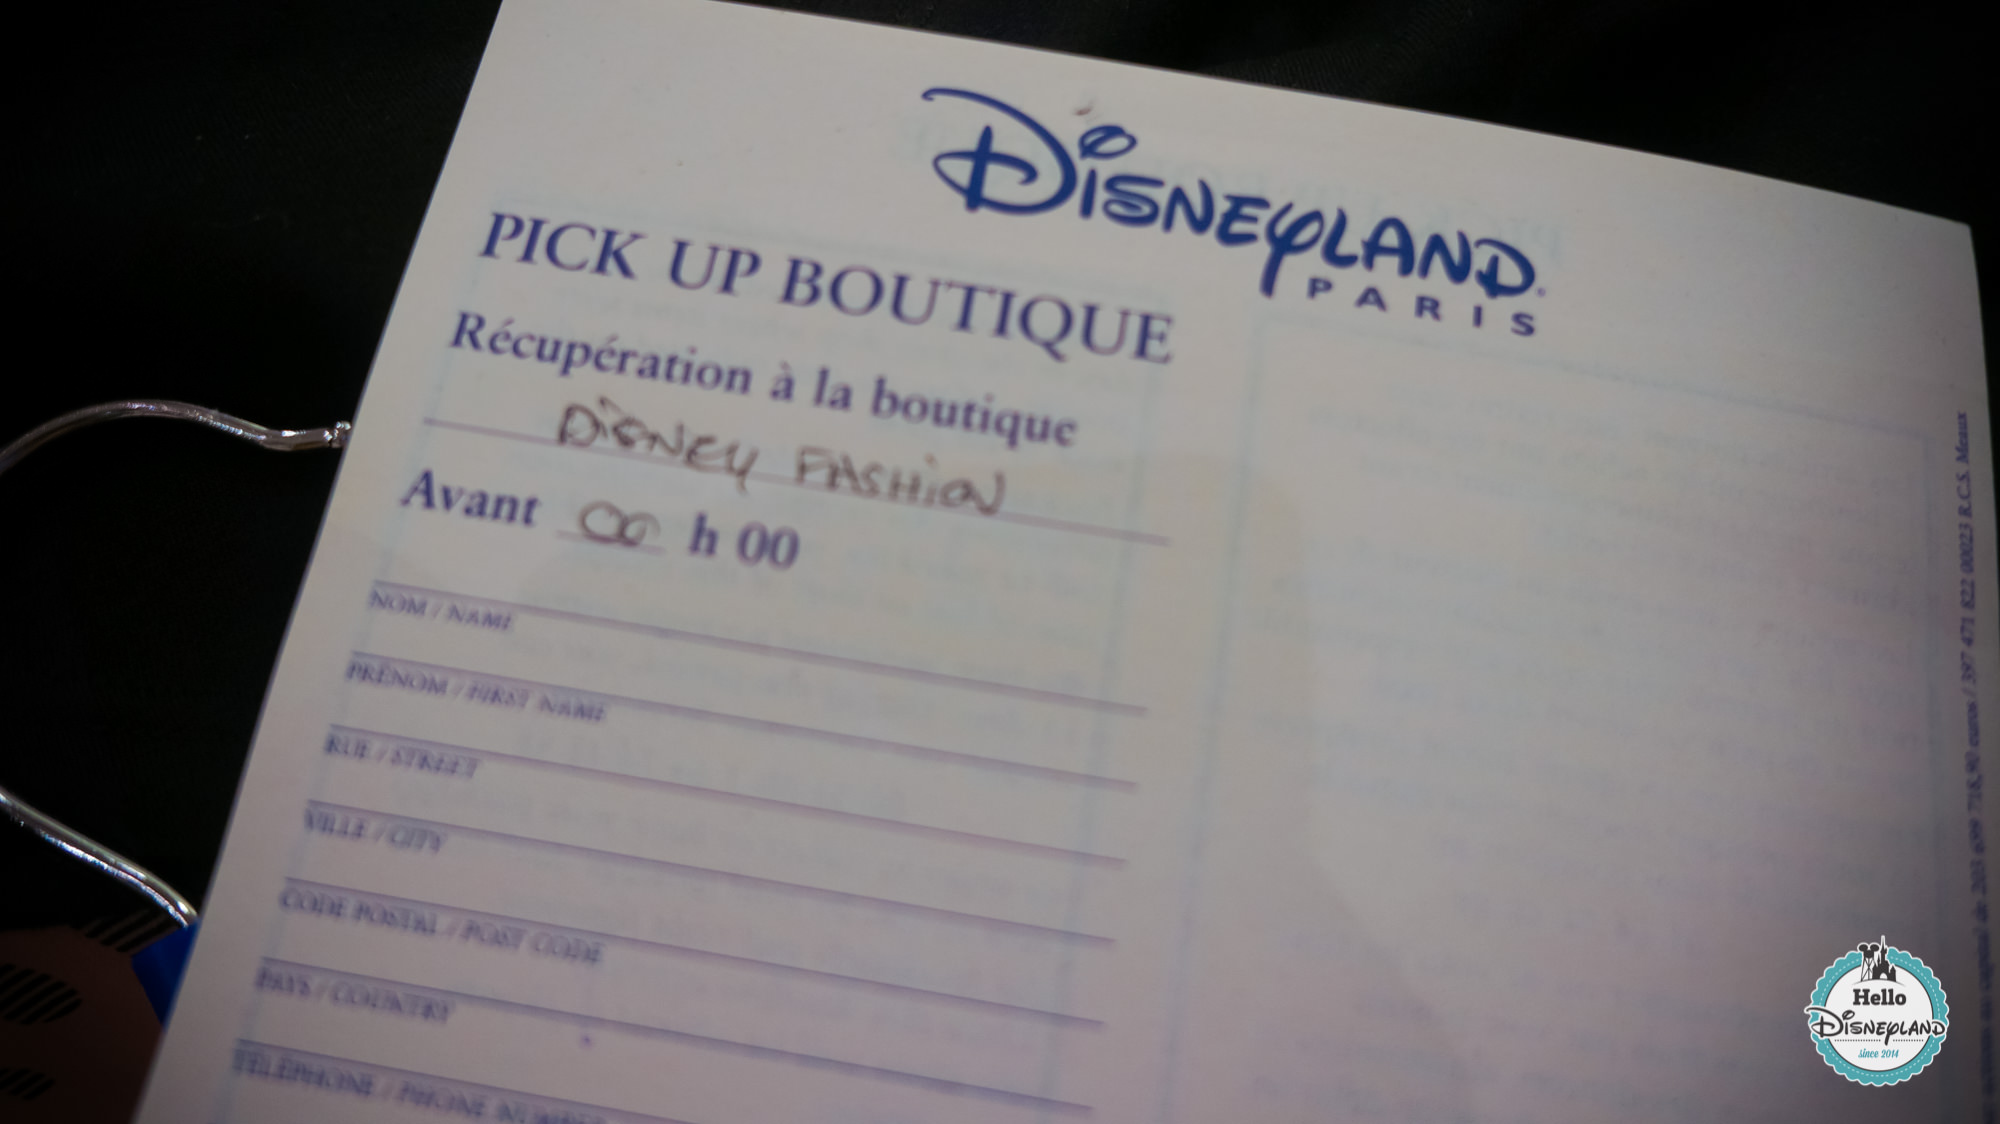 Pick Up Boutique Disneyland Paris-1